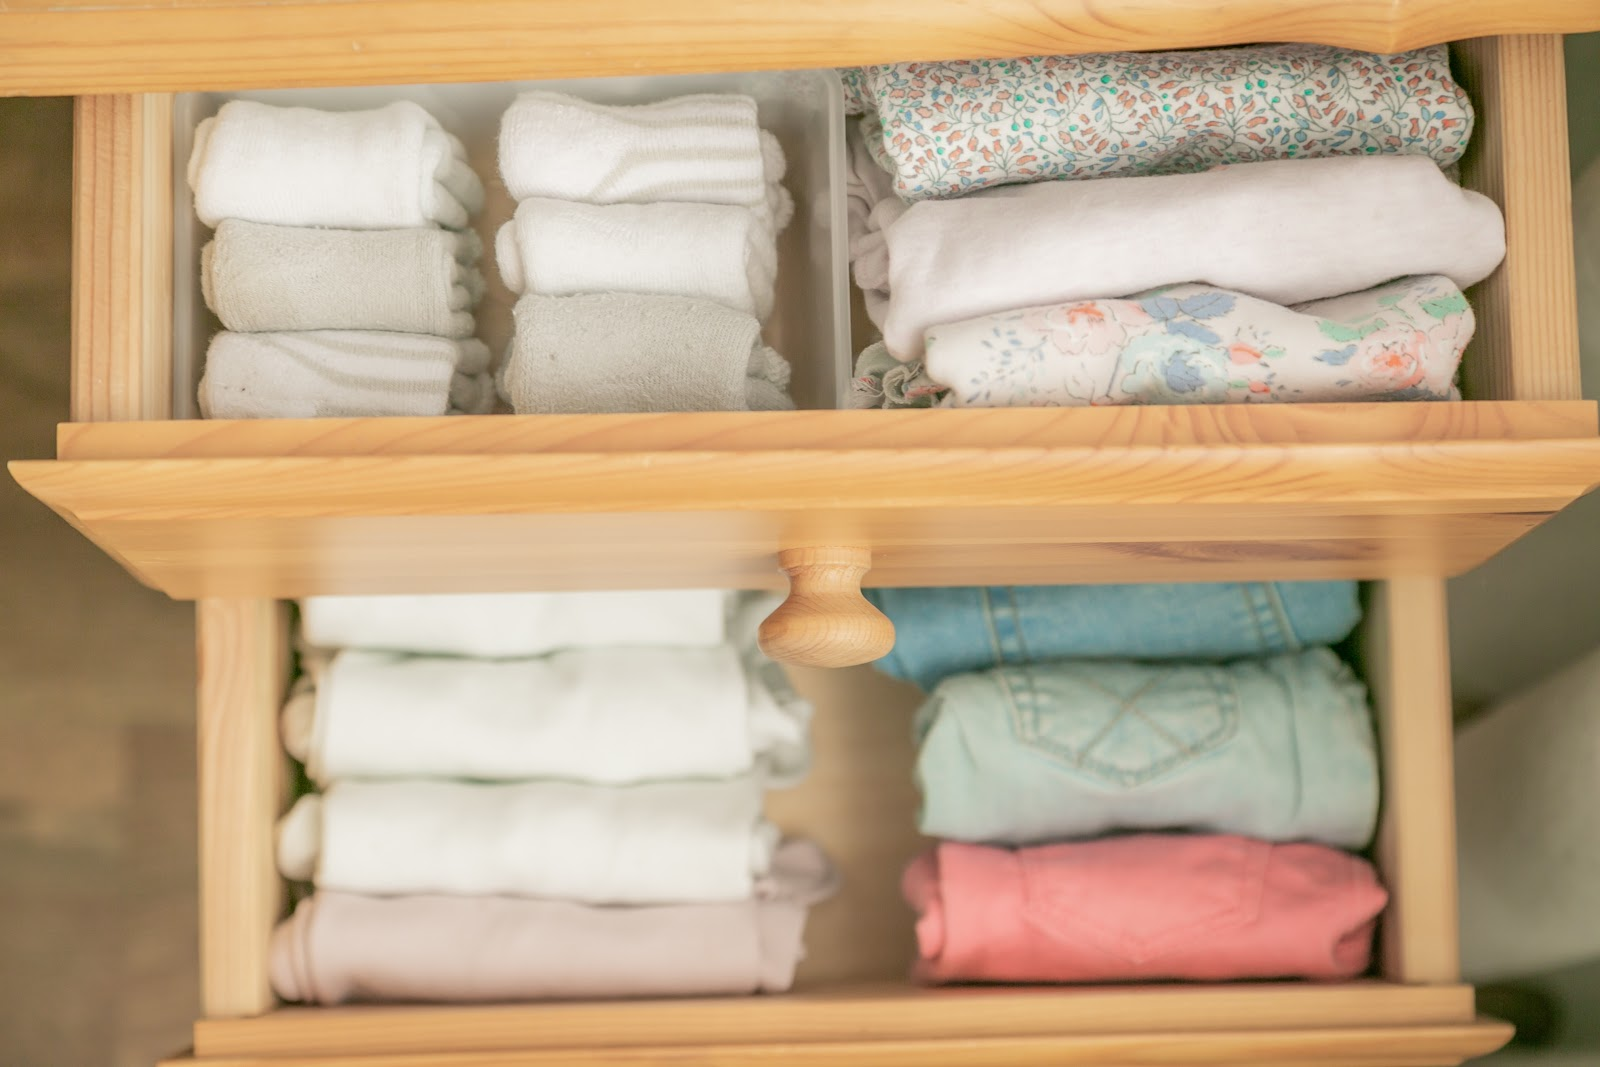 folded and organized towels